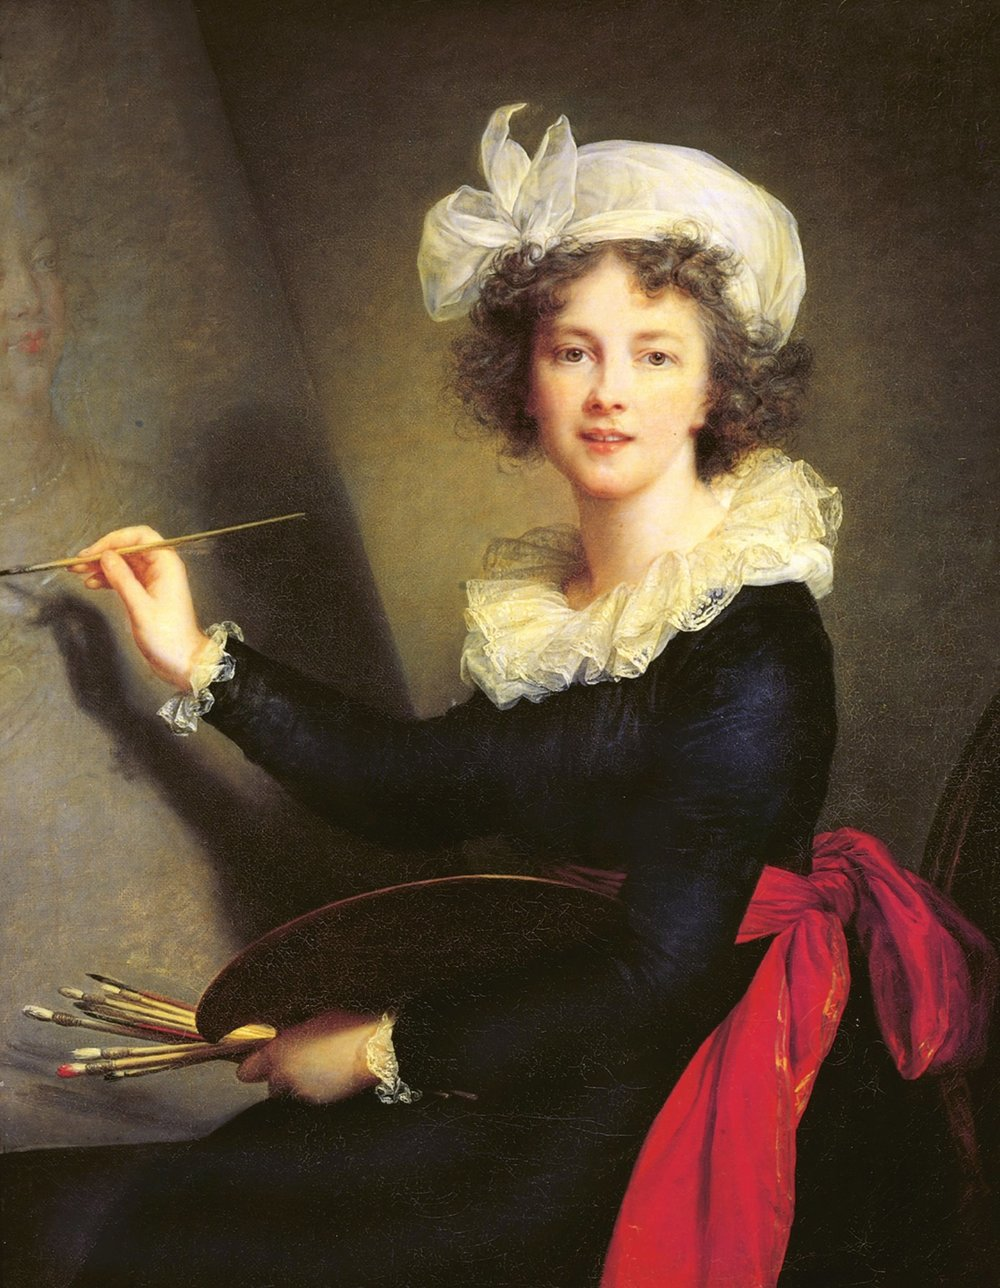 Elisabeth Vigée Lebrun, Self-Portrait, 1790, oil on canvas, Uffizi Gallery